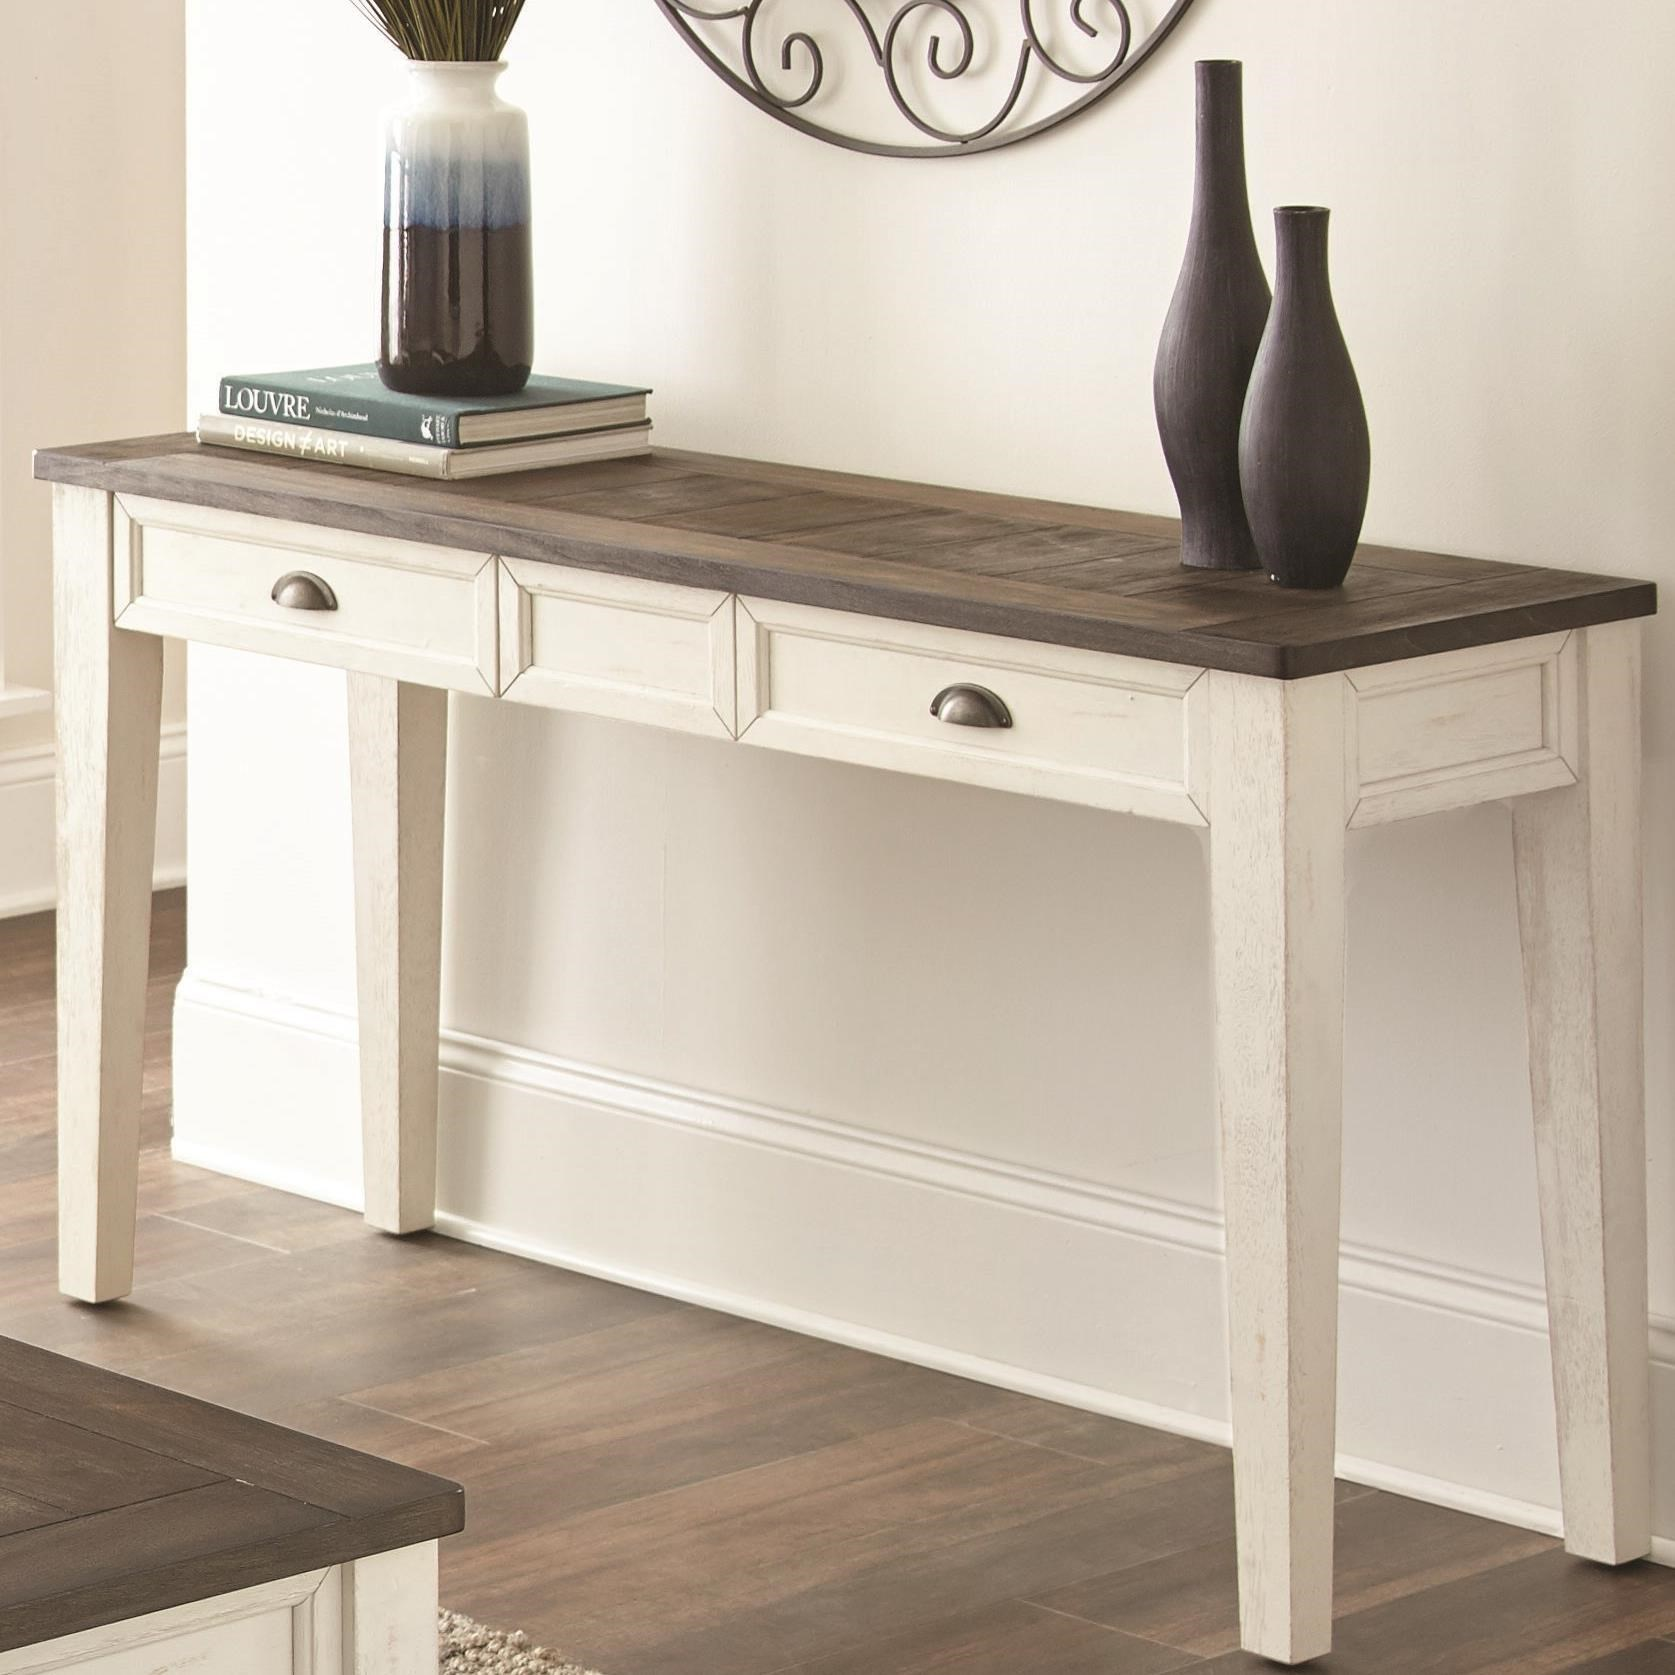 Cayla Sofa Table by Steve Silver at Northeast Factory Direct